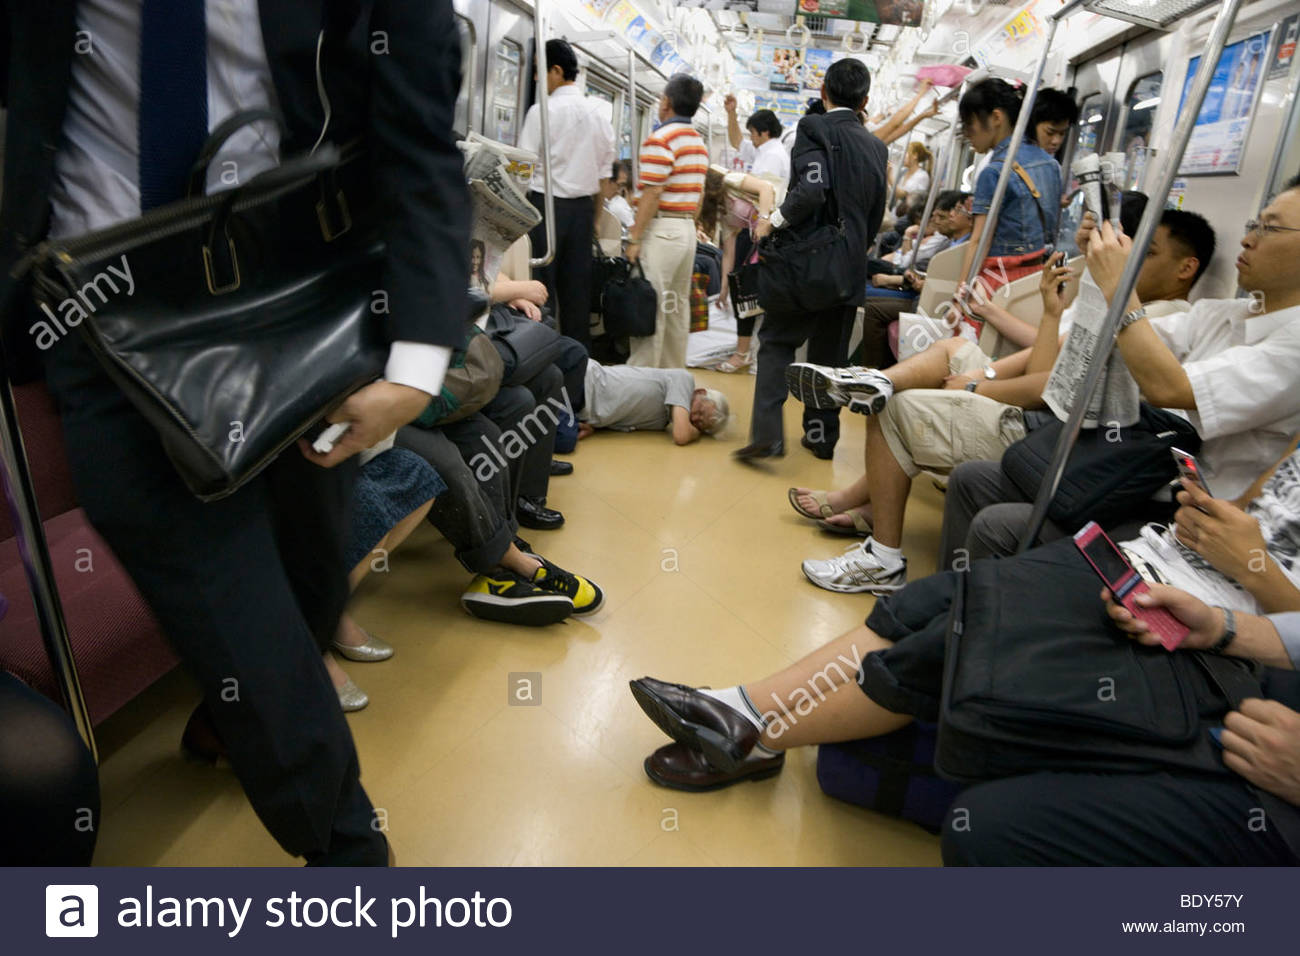 homeless man tokyo japan stockfotos homeless man tokyo japan bilder alamy. Black Bedroom Furniture Sets. Home Design Ideas